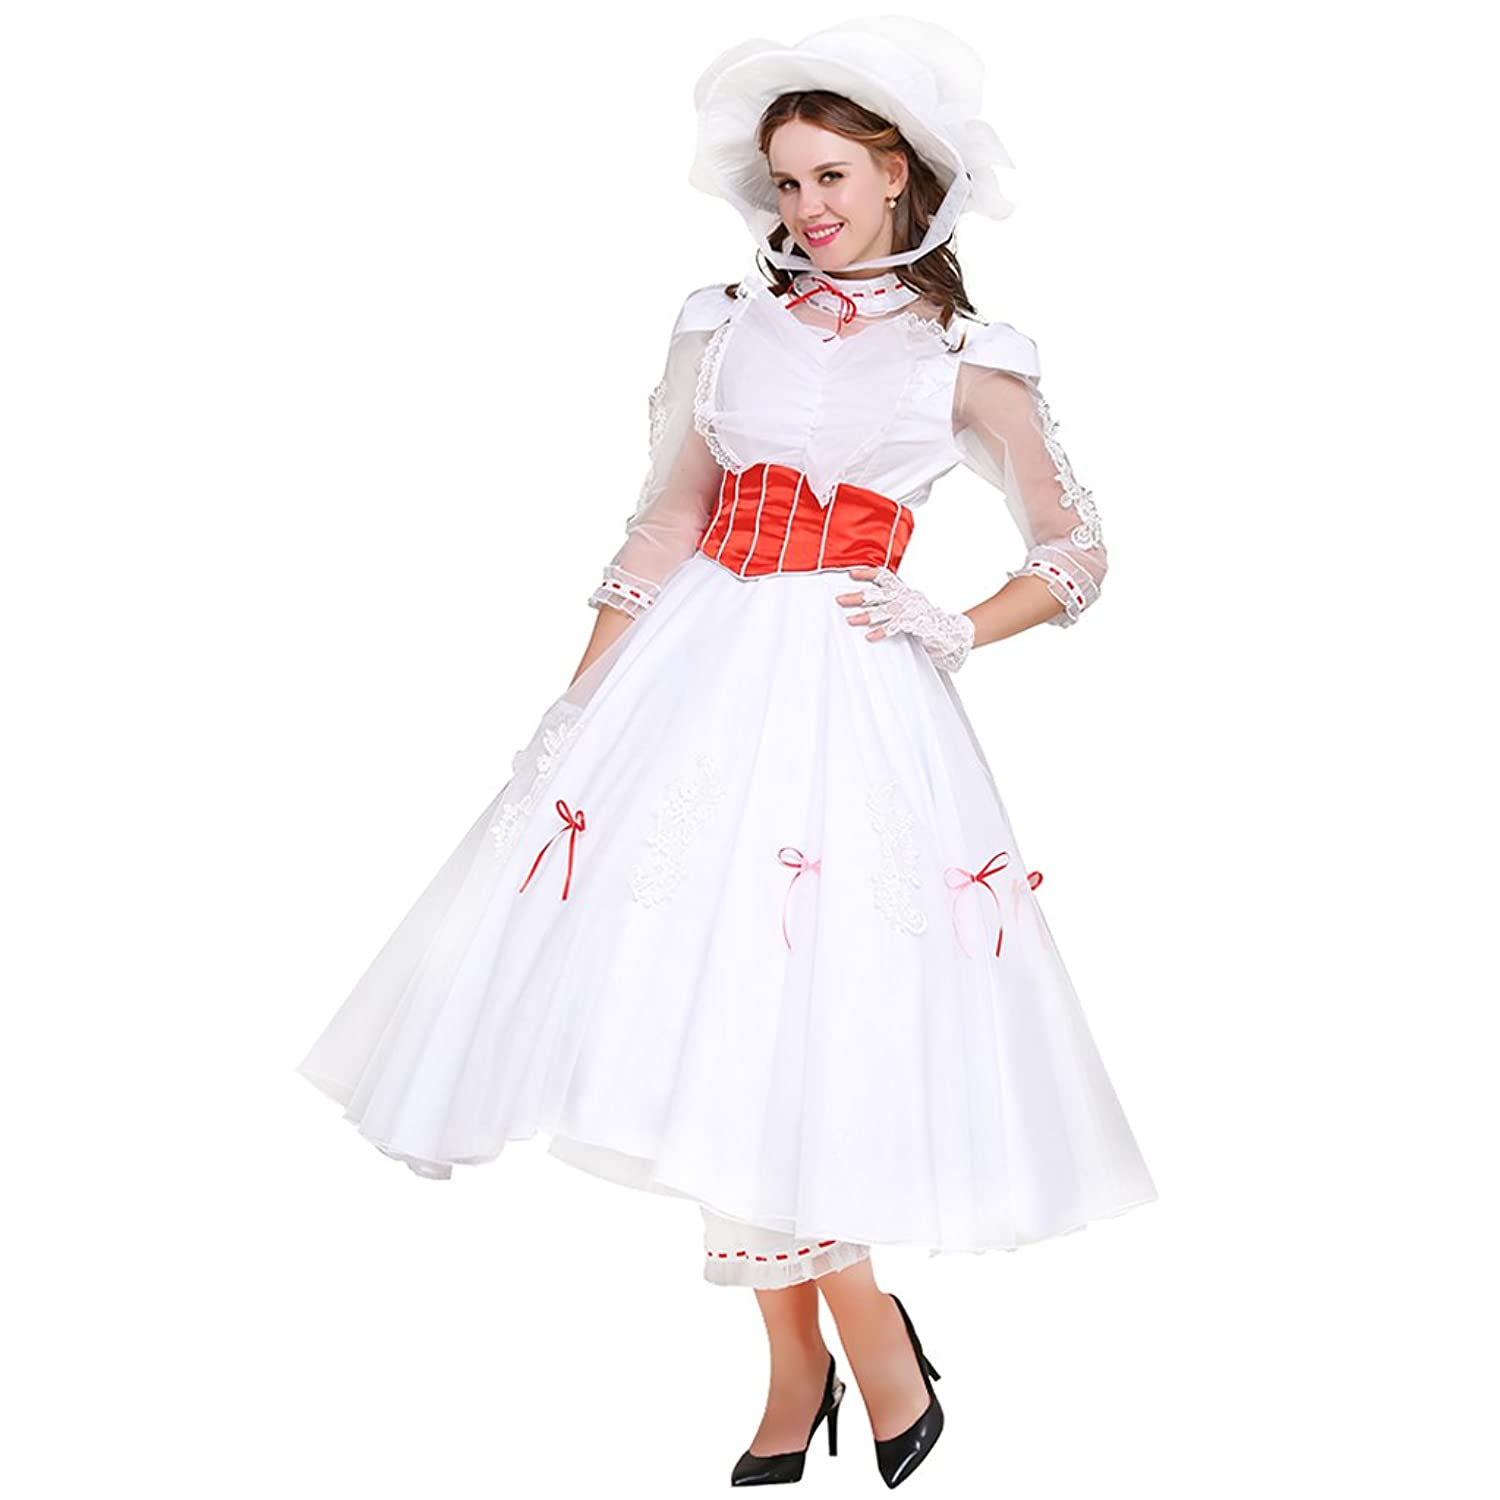 1900s, 1910s, WW1, Titanic Costumes Dress for Mary Poppins Princess Cosplay $133.00 AT vintagedancer.com